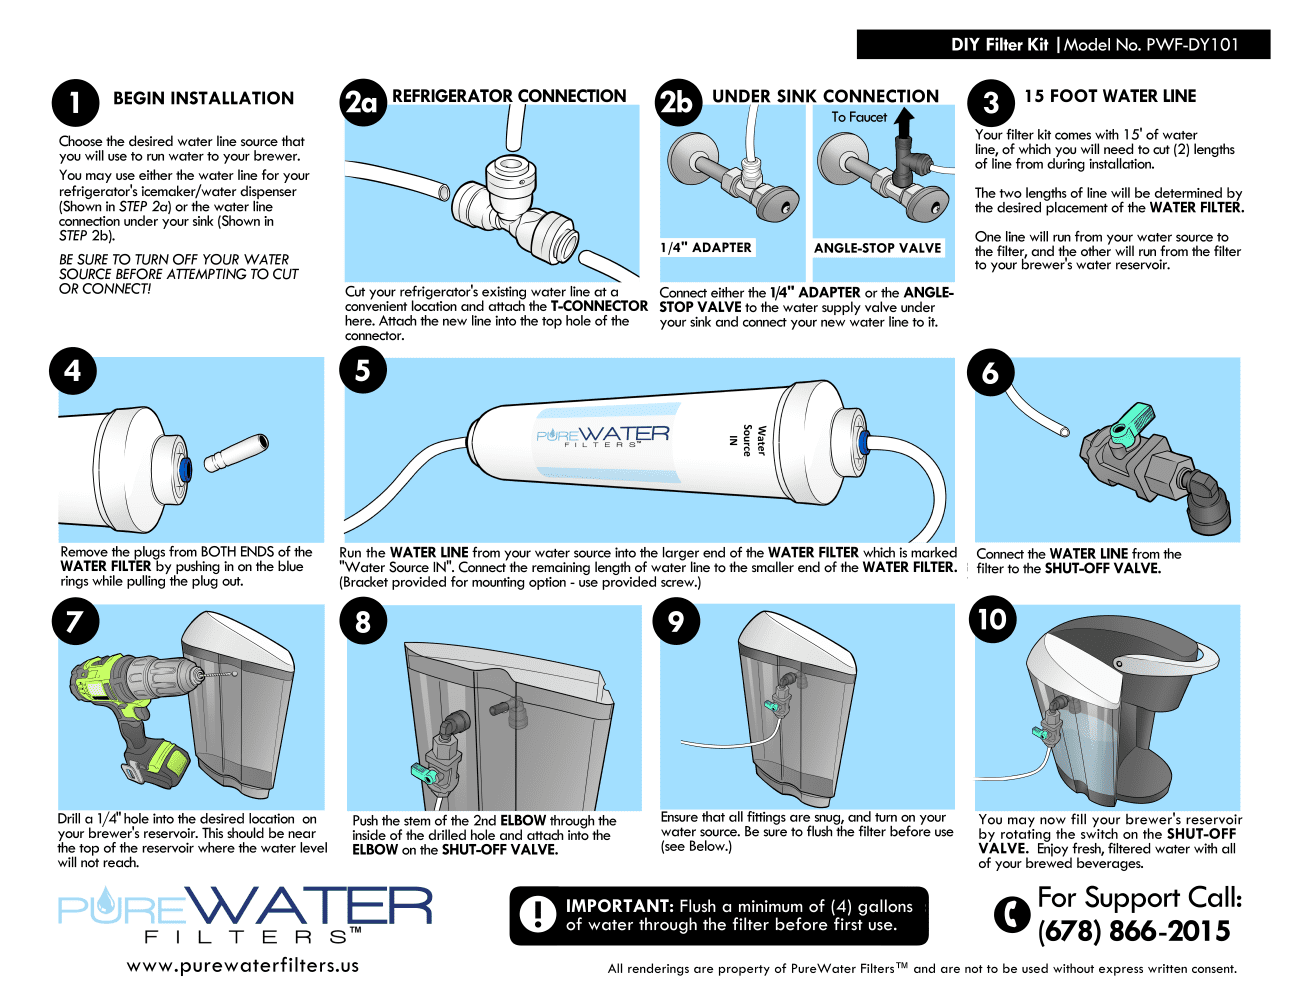 Filtered water refill do it yourself kit for non commercial keurig keurig do it yourself filter kit instructions by purewater filters solutioingenieria